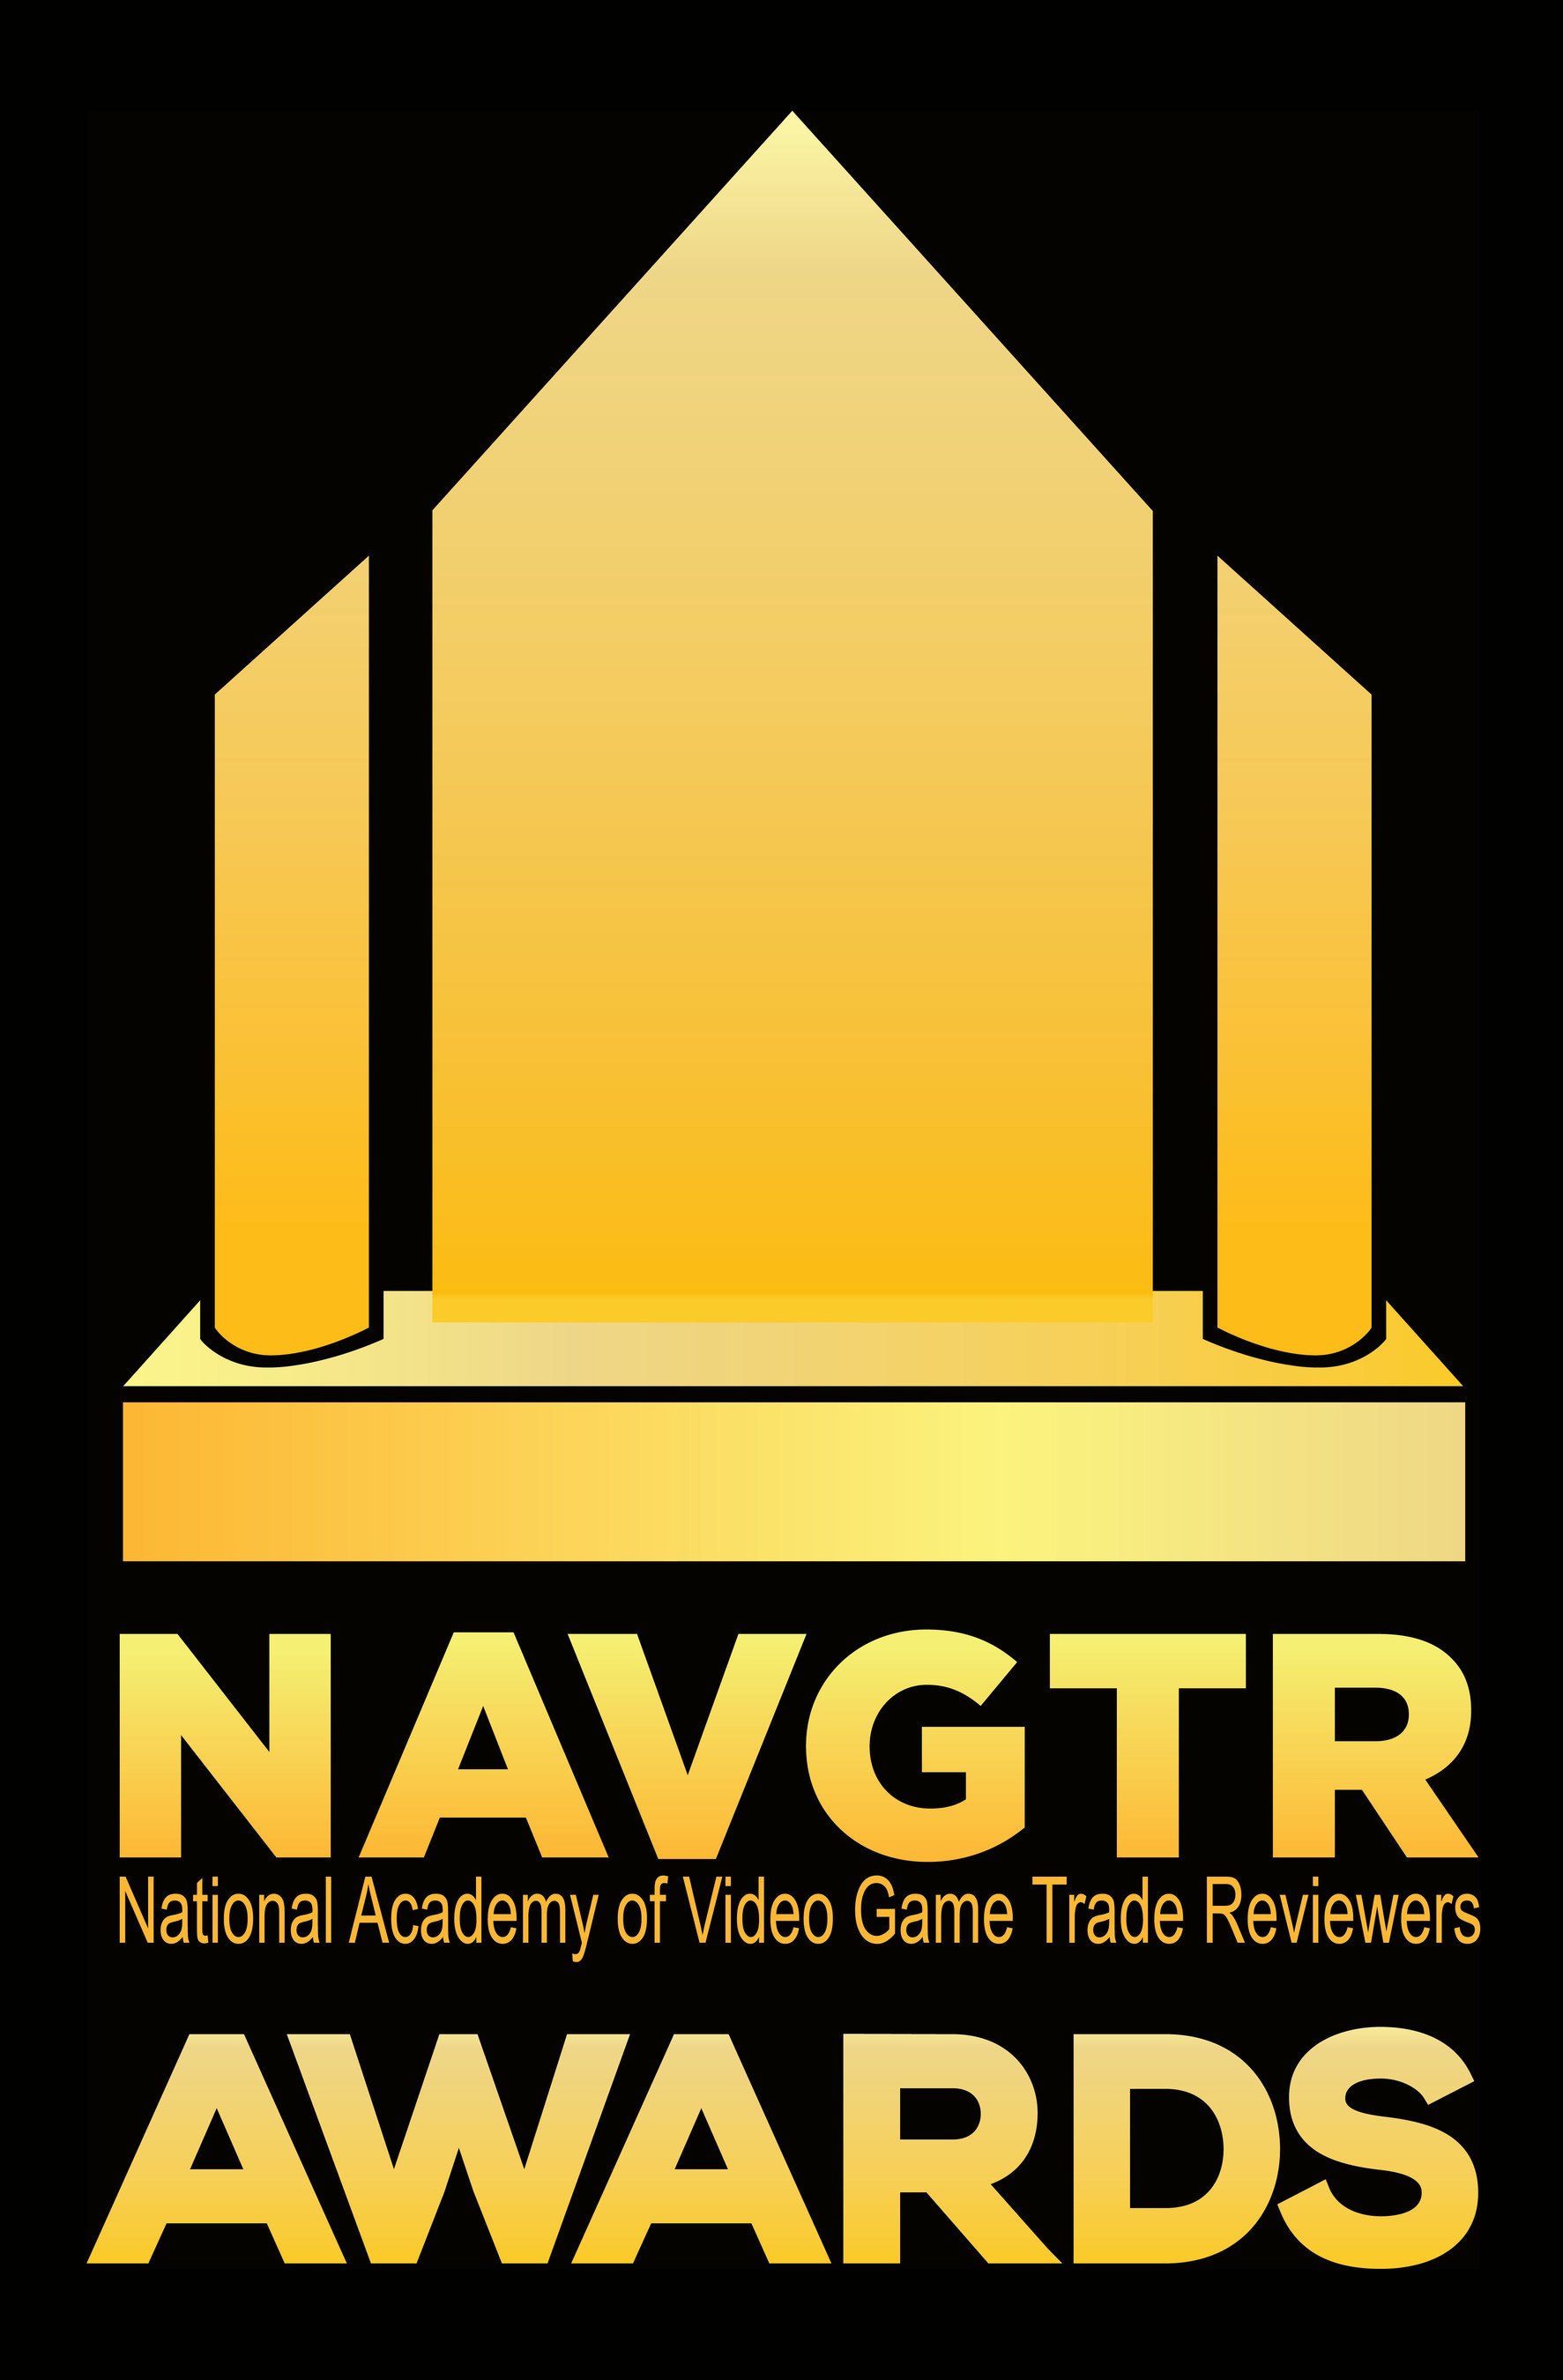 Sony, Bethesda, Warner Bros., Square Enix, and Nintendo lead NAVGTR Nominations